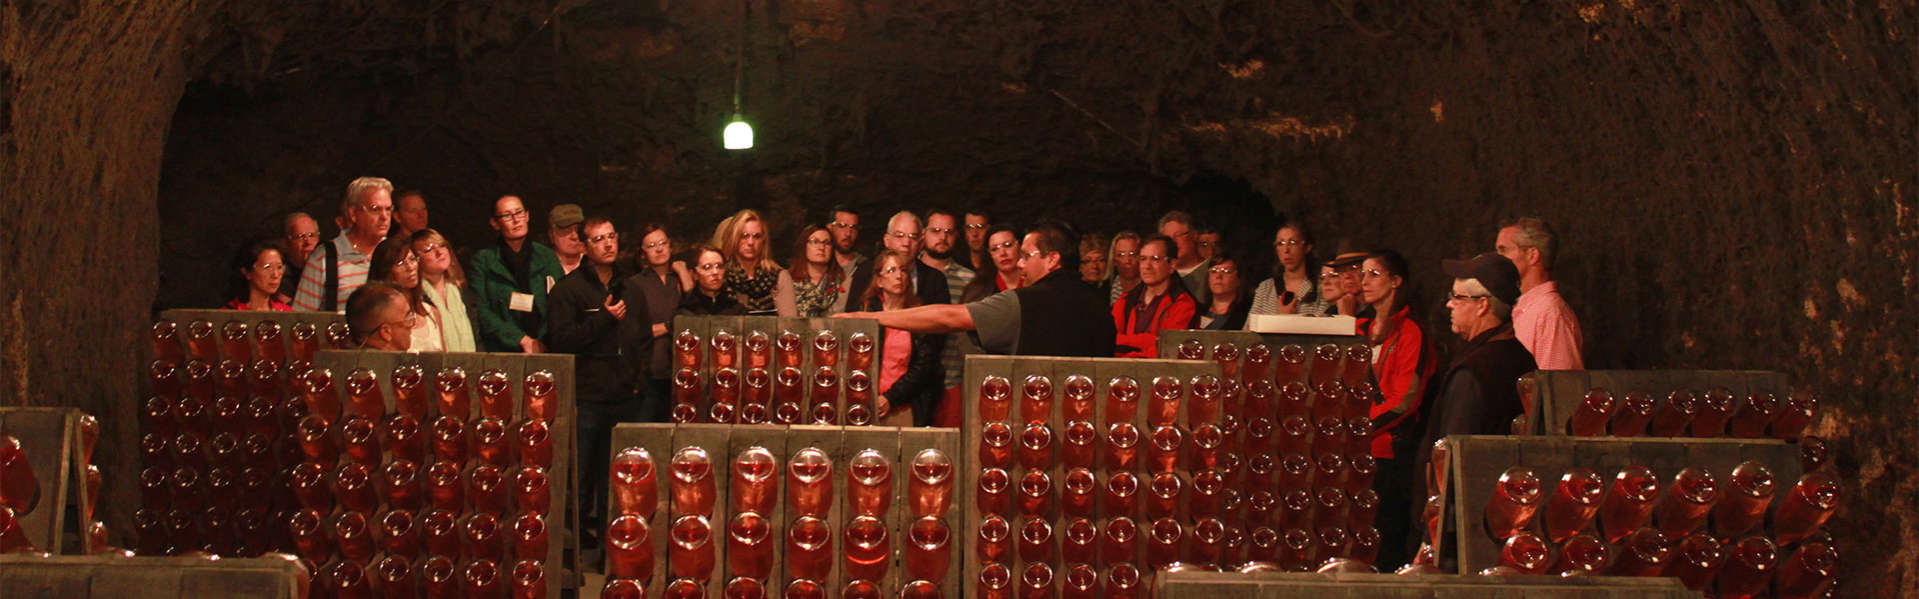 Group from Camp Schramsberg watching a riddling demonstration in the wine caves